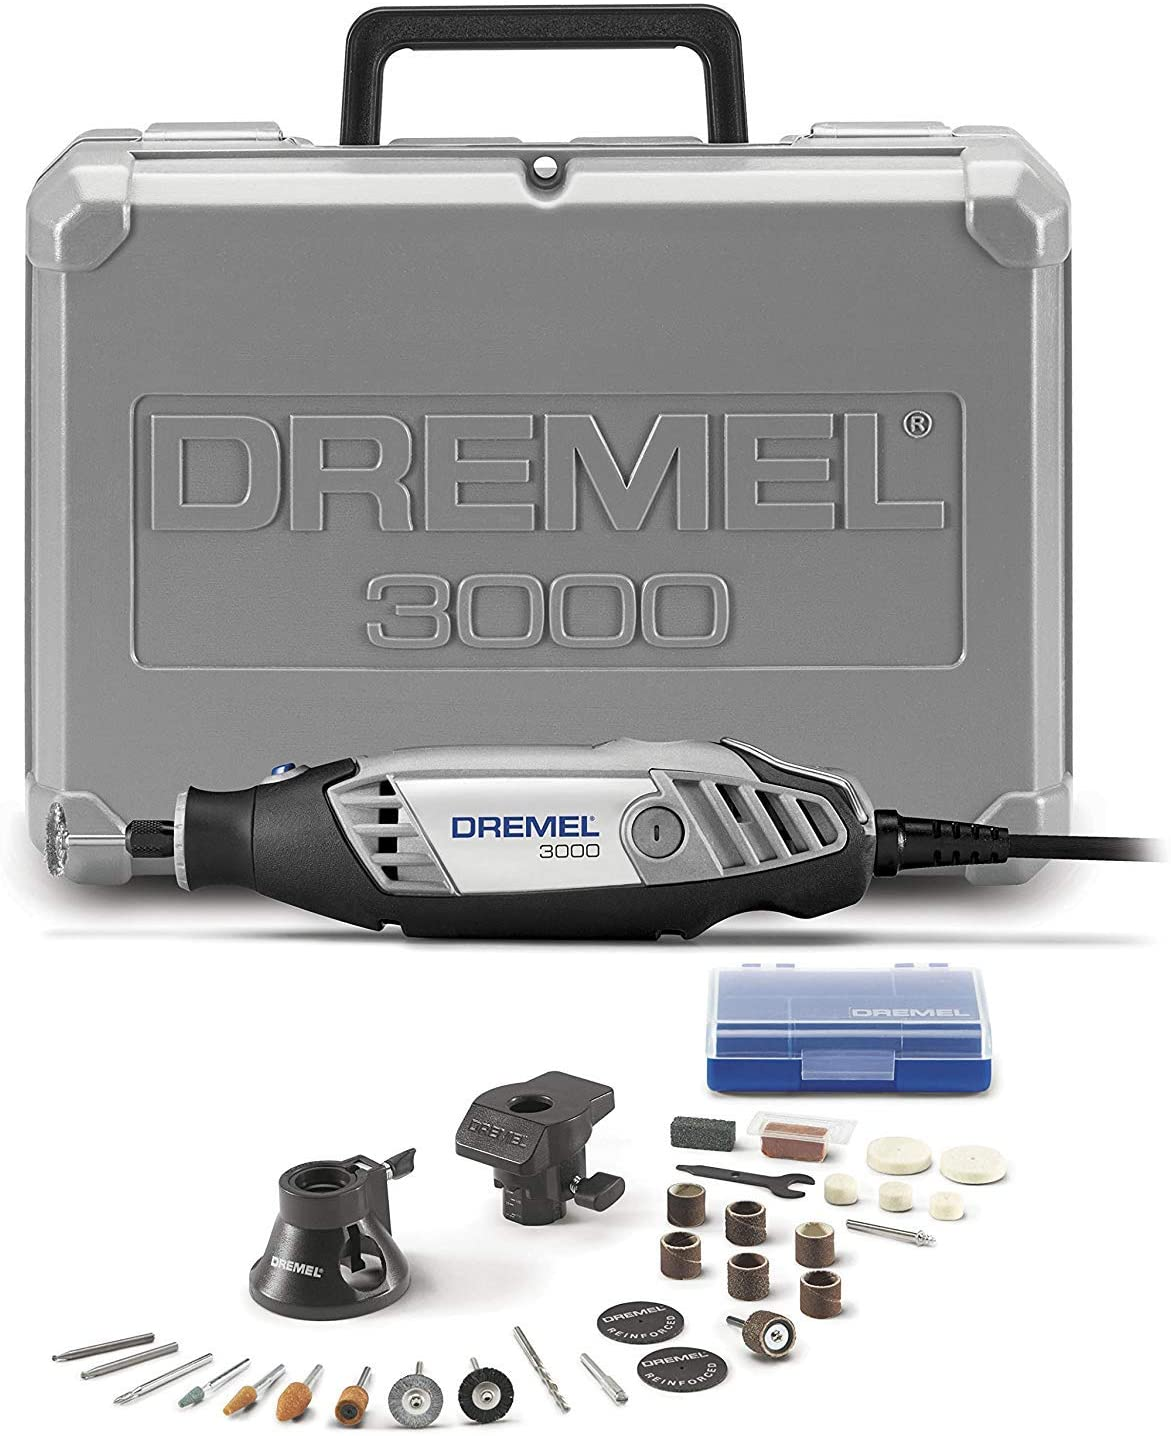 Dremel 3000-2 28 Variable Speed Rotary Tool Kit